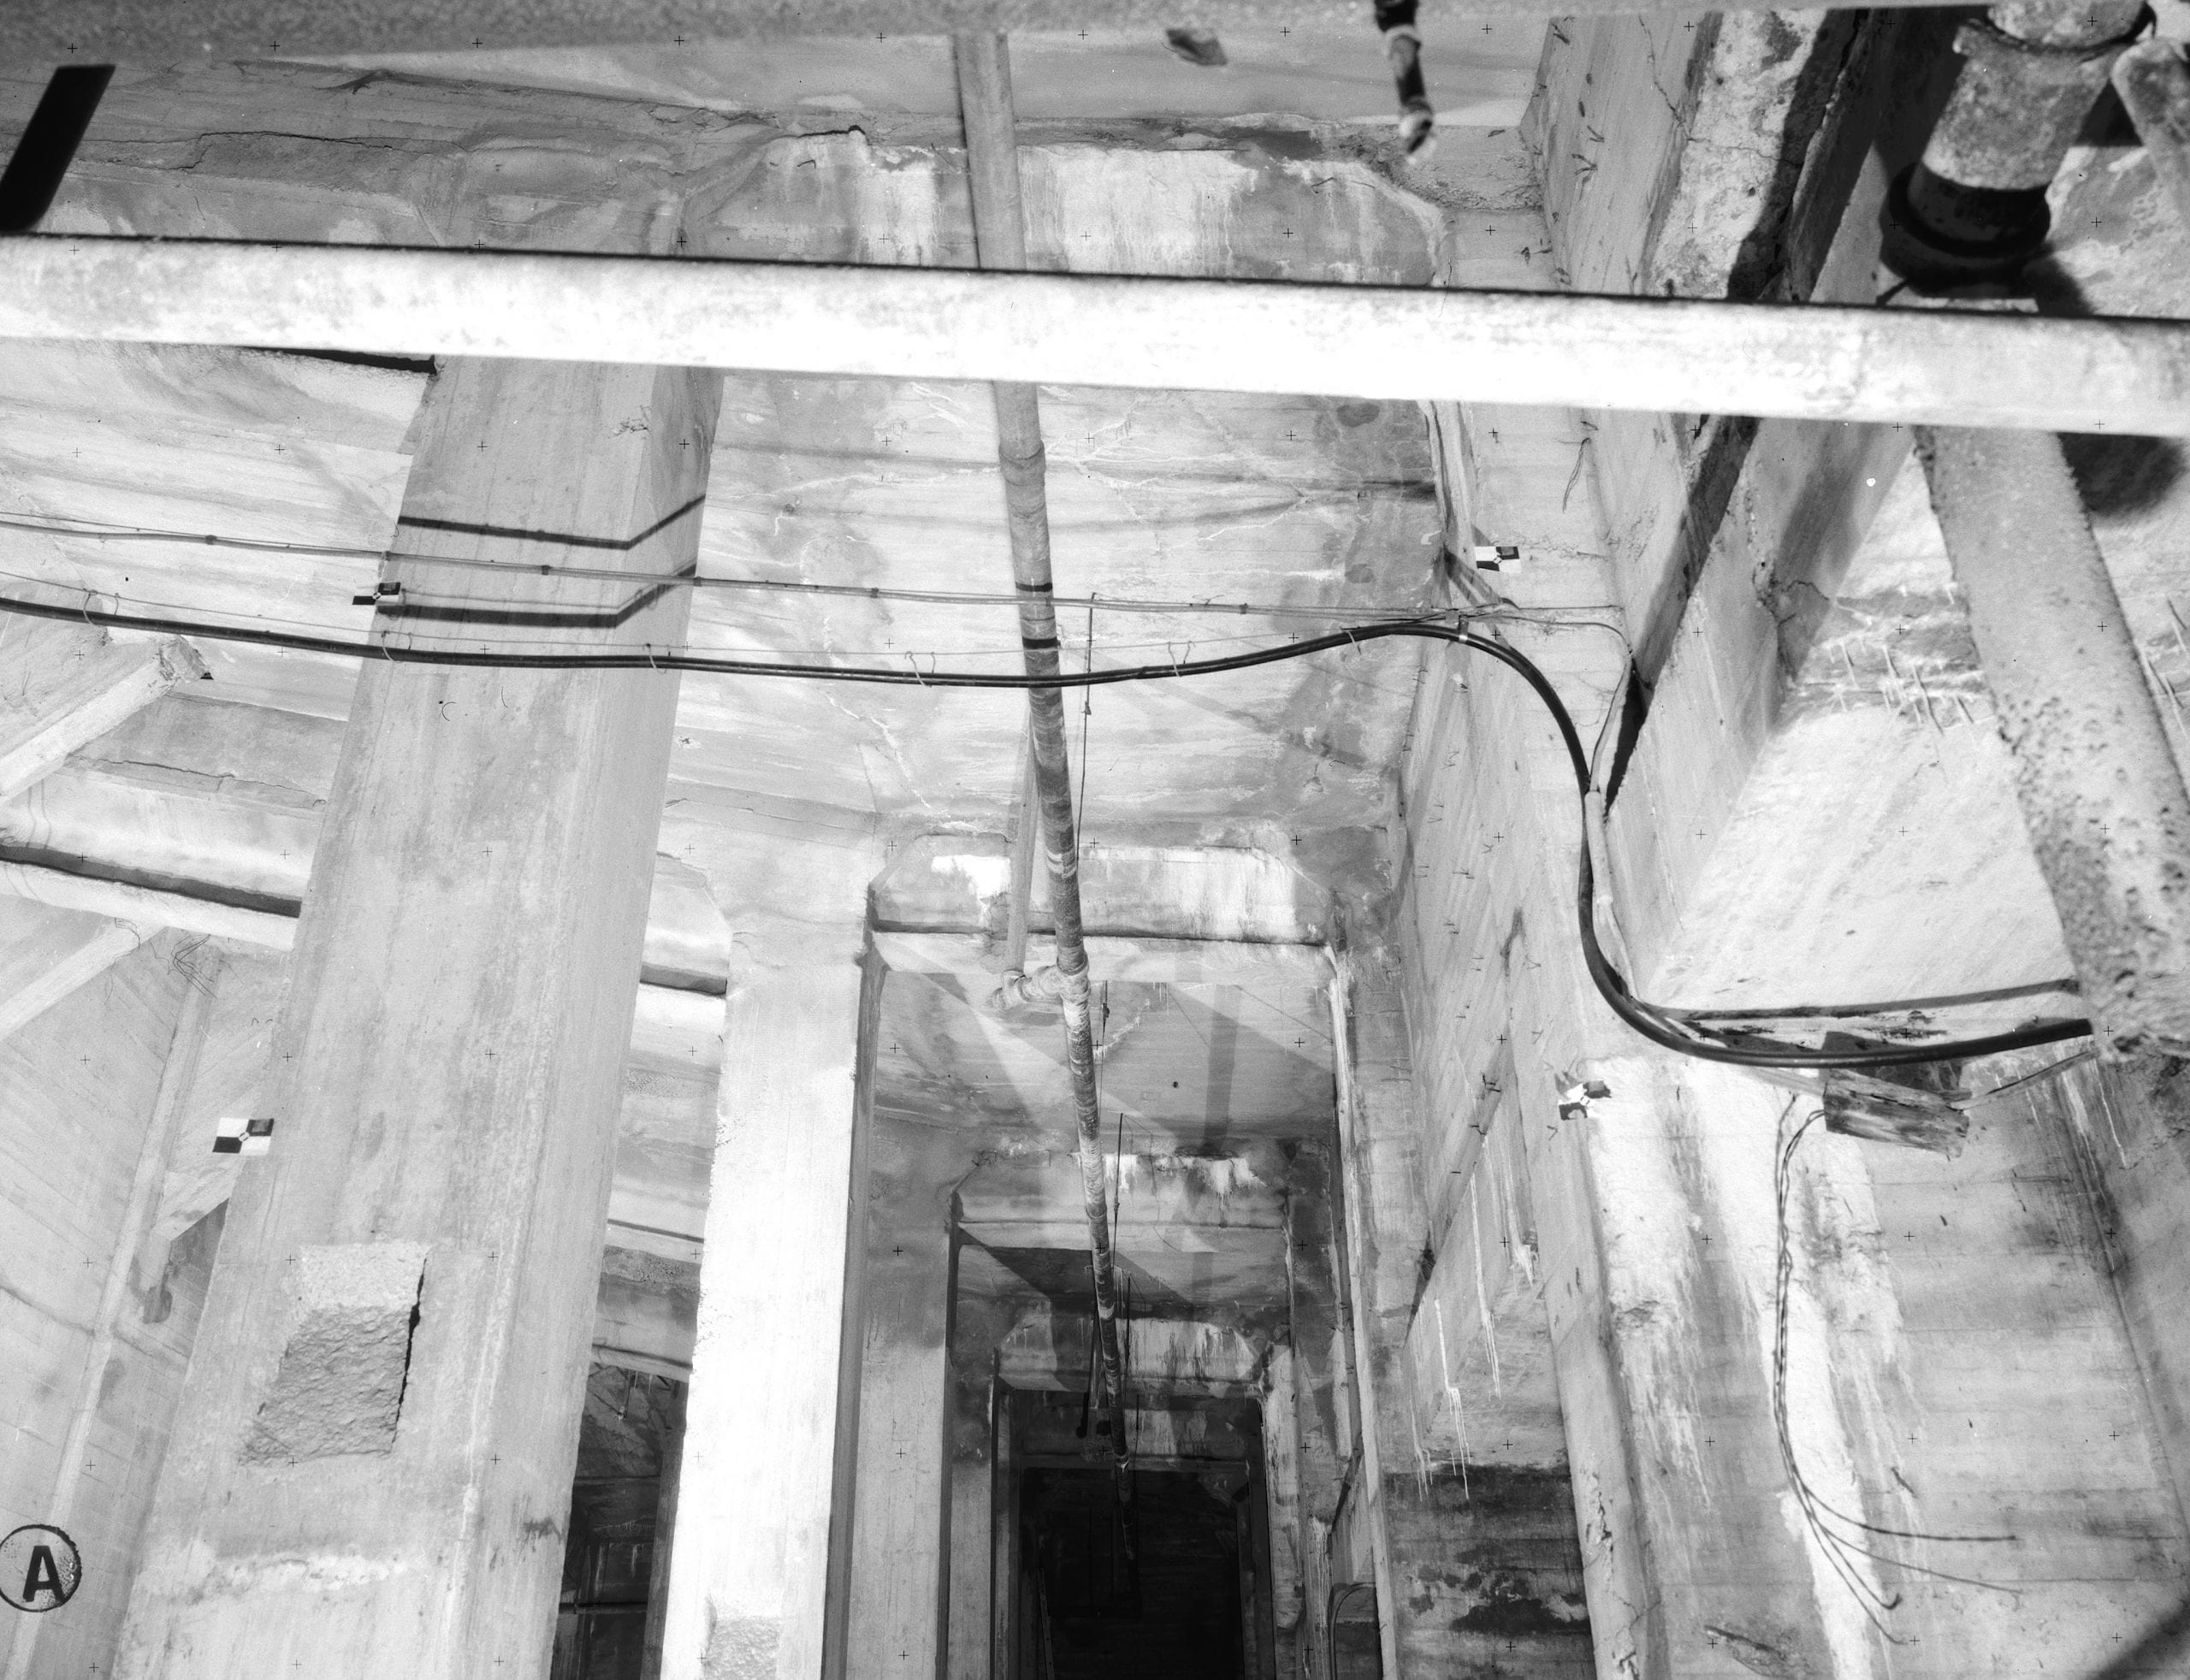 Basement below north terrace, looking west. 15 July 1992. - Lincoln Memorial, West Potomac Park, Washington, District of Columbia, DC